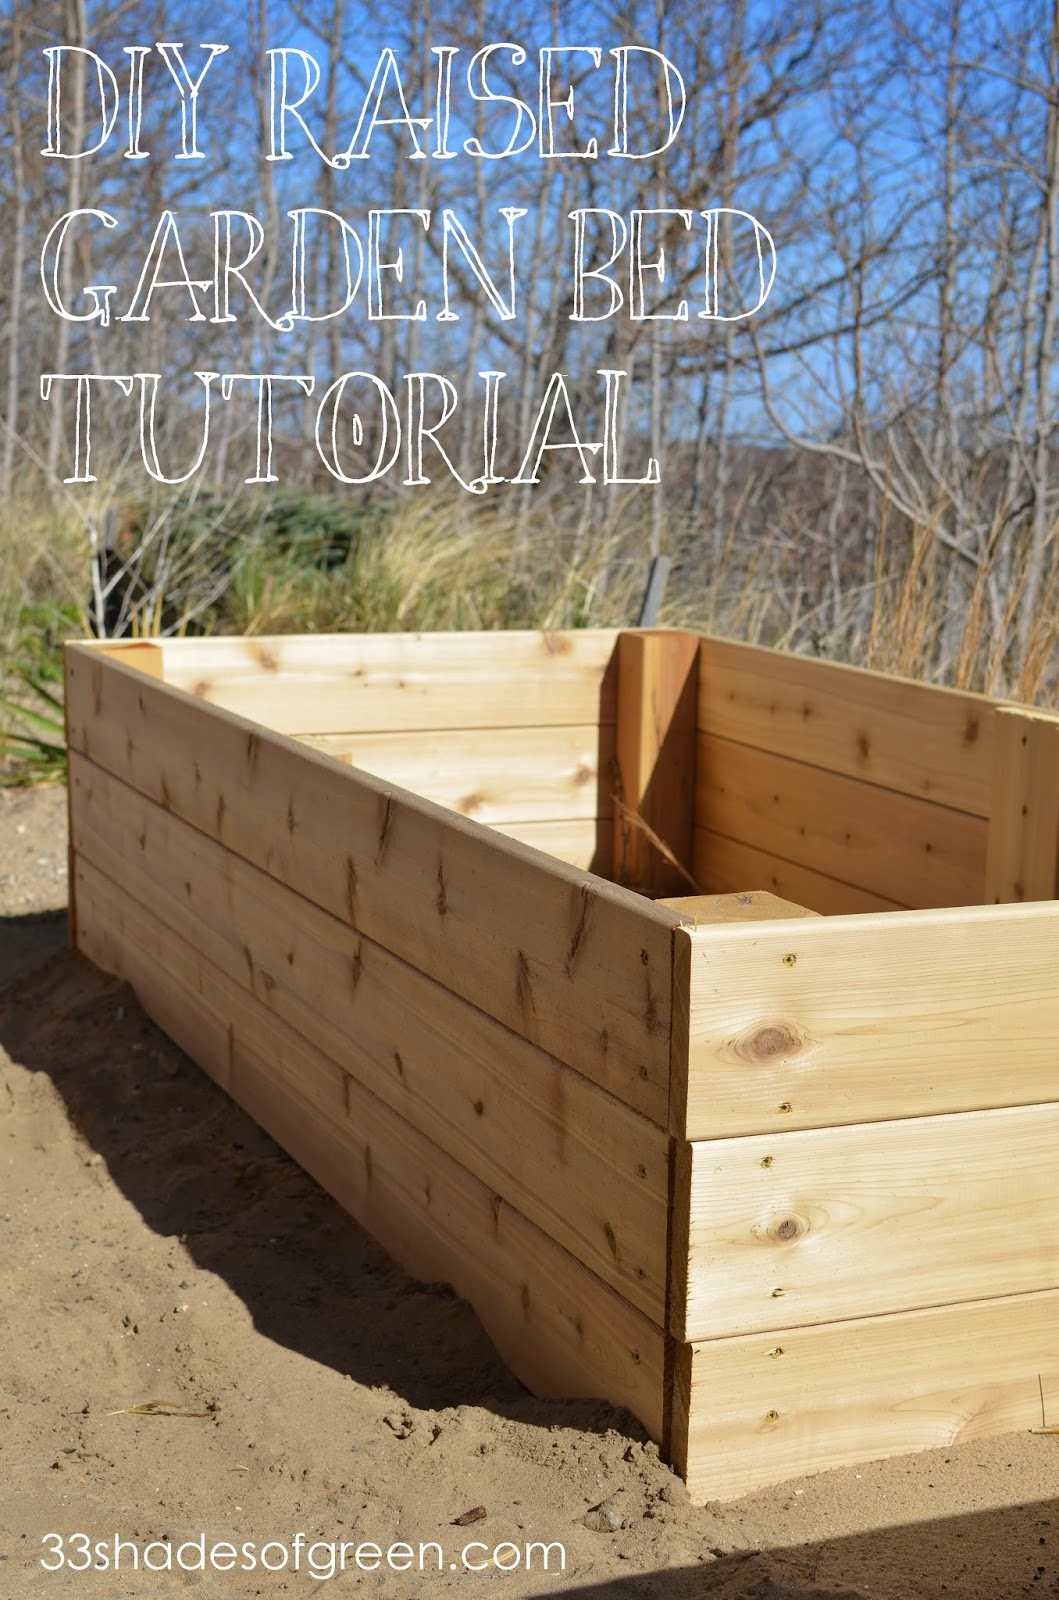 33 Shades Of Green Easy Diy Raised Garden Bed Tutorial